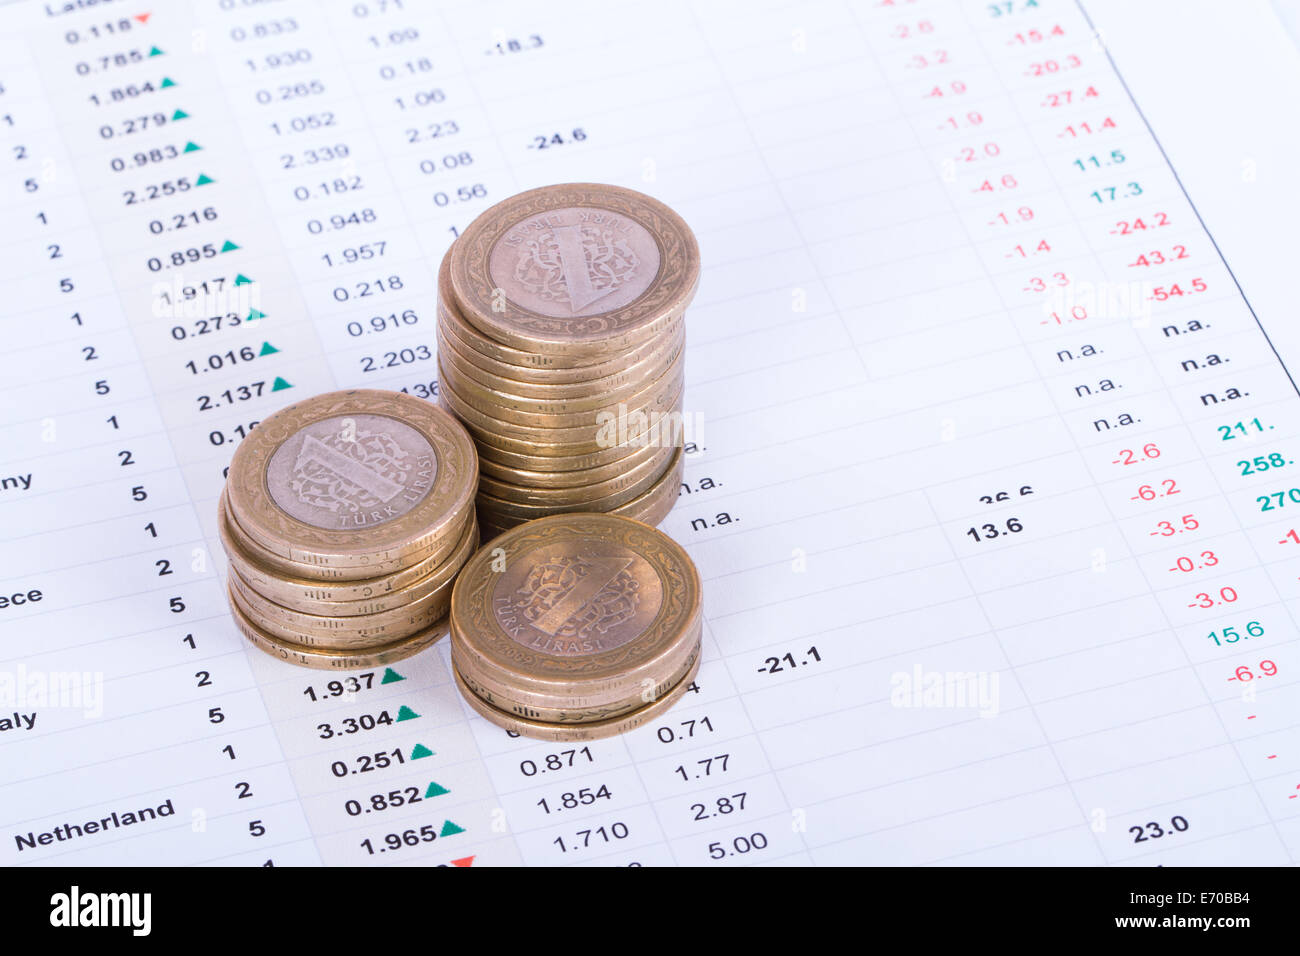 Coins on financial data analysis. - Stock Image